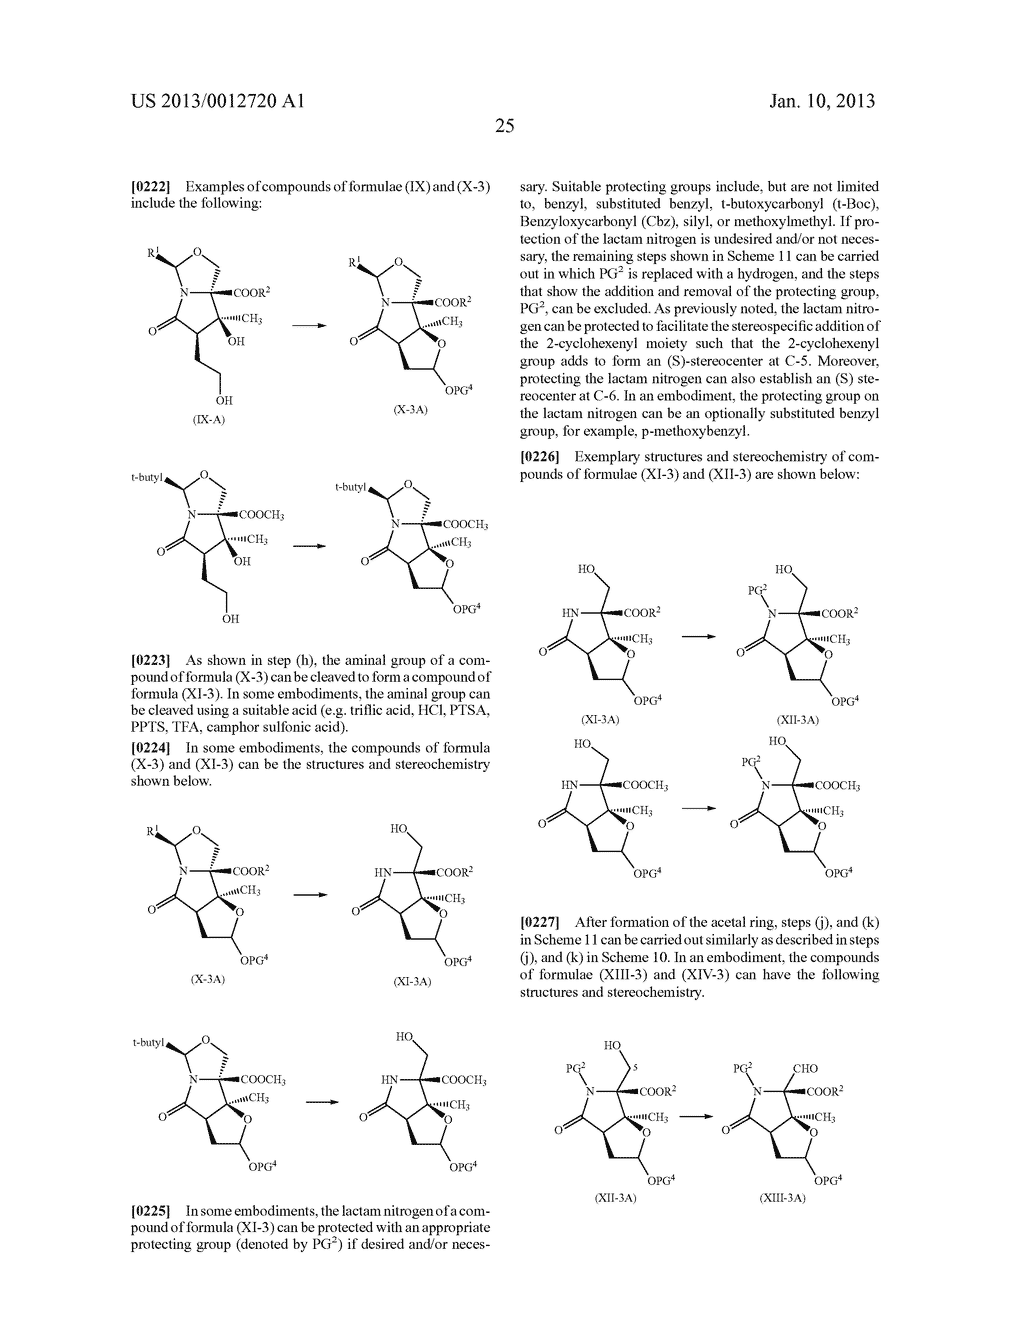 TOTAL SYNTHESIS OF SALINOSPORAMIDE A AND ANALOGS THEREOF - diagram, schematic, and image 87